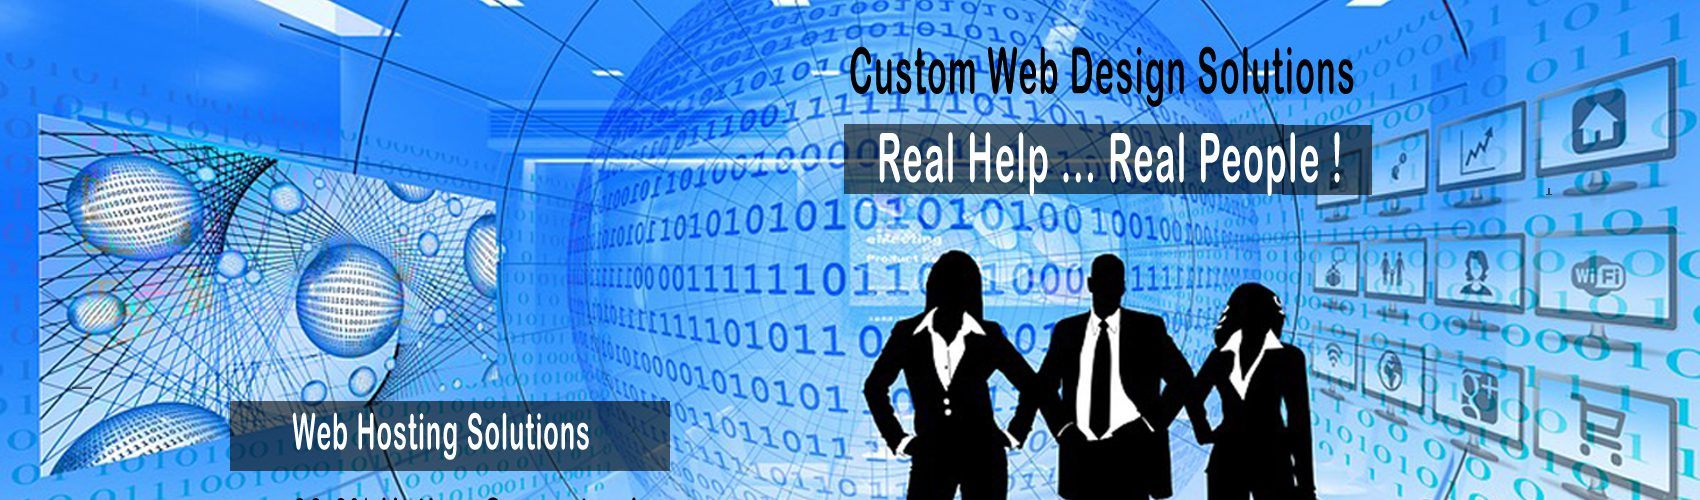 U-Bute designs, Ubute Designs Frankston, UBute Designs Cranbourne, UBute Designs Carrum Downs, U-Bute Designs Carrum Downs, U-Bute Designs Cranbourne, Web Hosting Melbourne, web Hosting Cranbourne, Web Hosting Frankston, web hosting Chelsea, web hosting Melbourne, web hosting Bayside, web hosting Carrum Downs, Web Hosting Mornington Peninsula, Email Hosting Melbourne, Email Hosting Cranbourne, Email Hosting Frankston, Email Hosting Mornington Peninsula, email hosting Bayside, email hosting Frankston, email hosting Carrum Downs, email hosting Melbourne